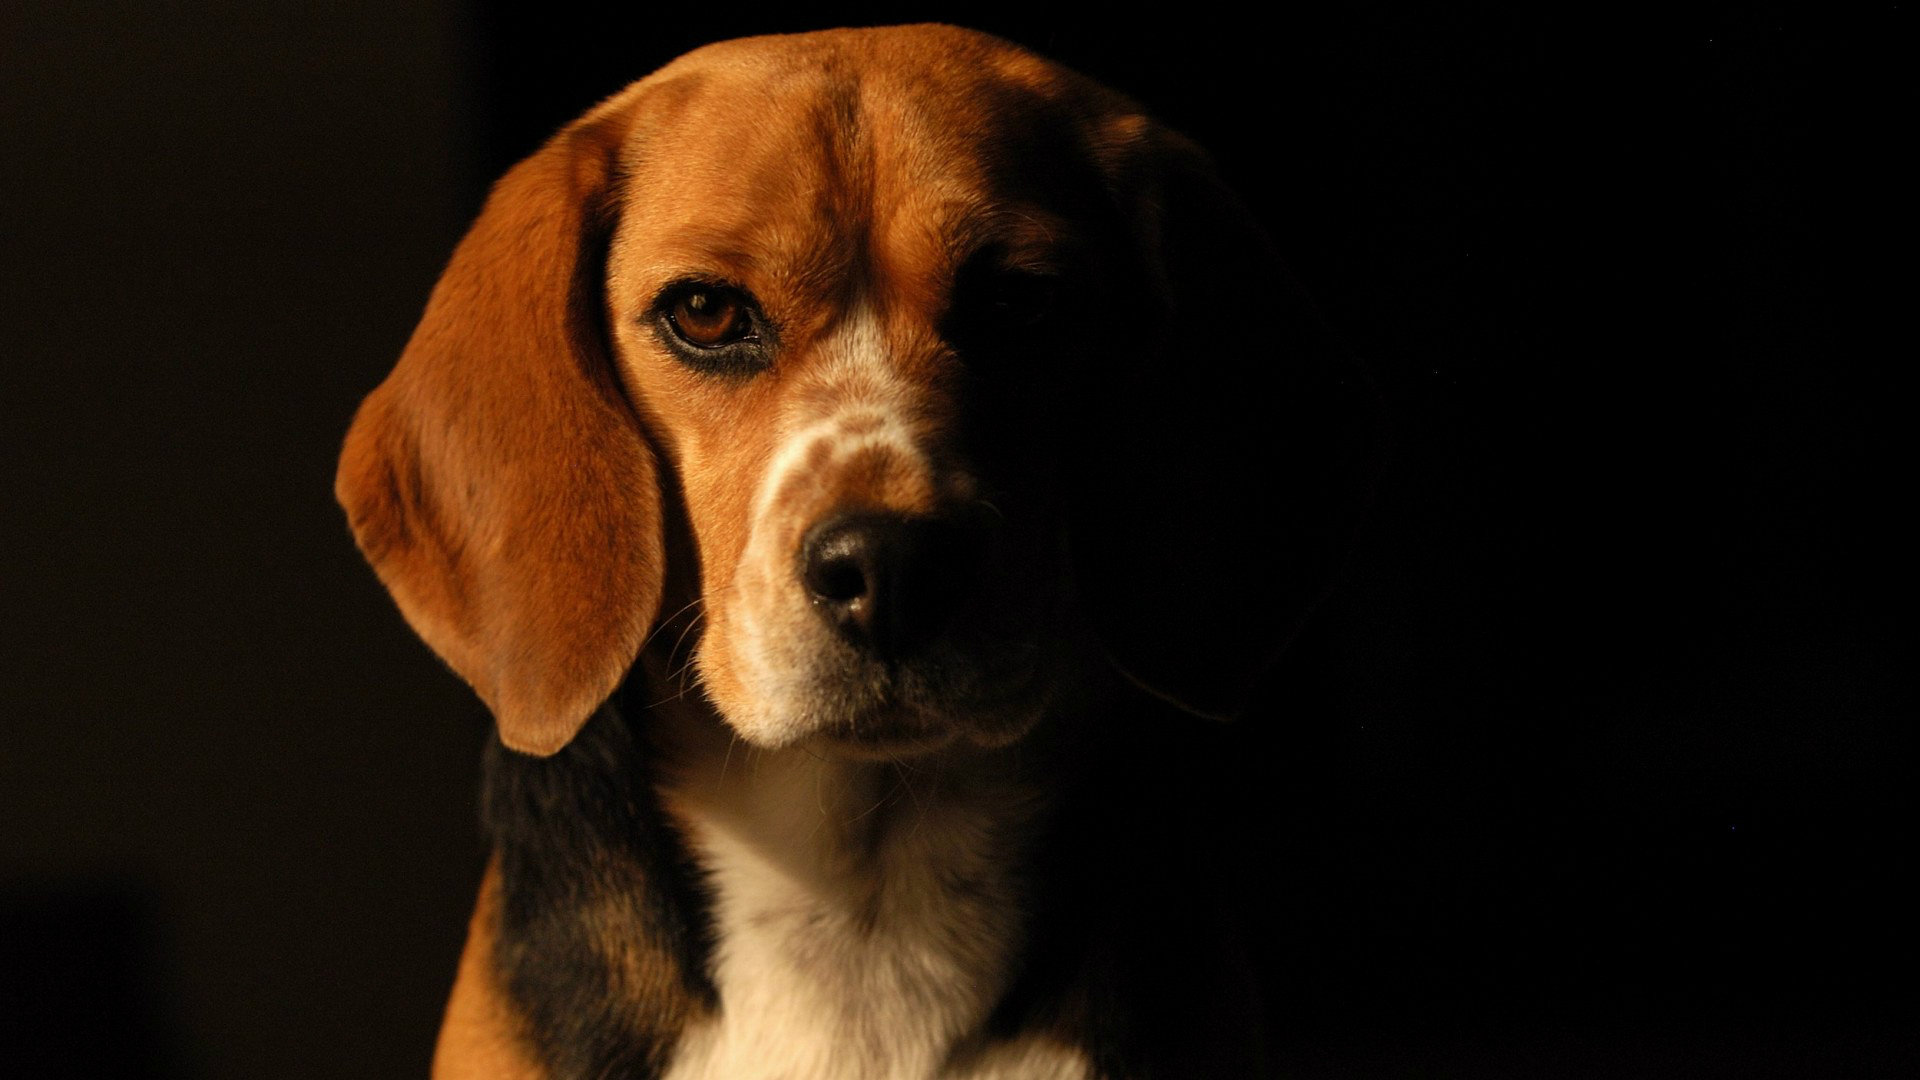 Download full hd 1920x1080 Beagle PC background ID:294233 for free